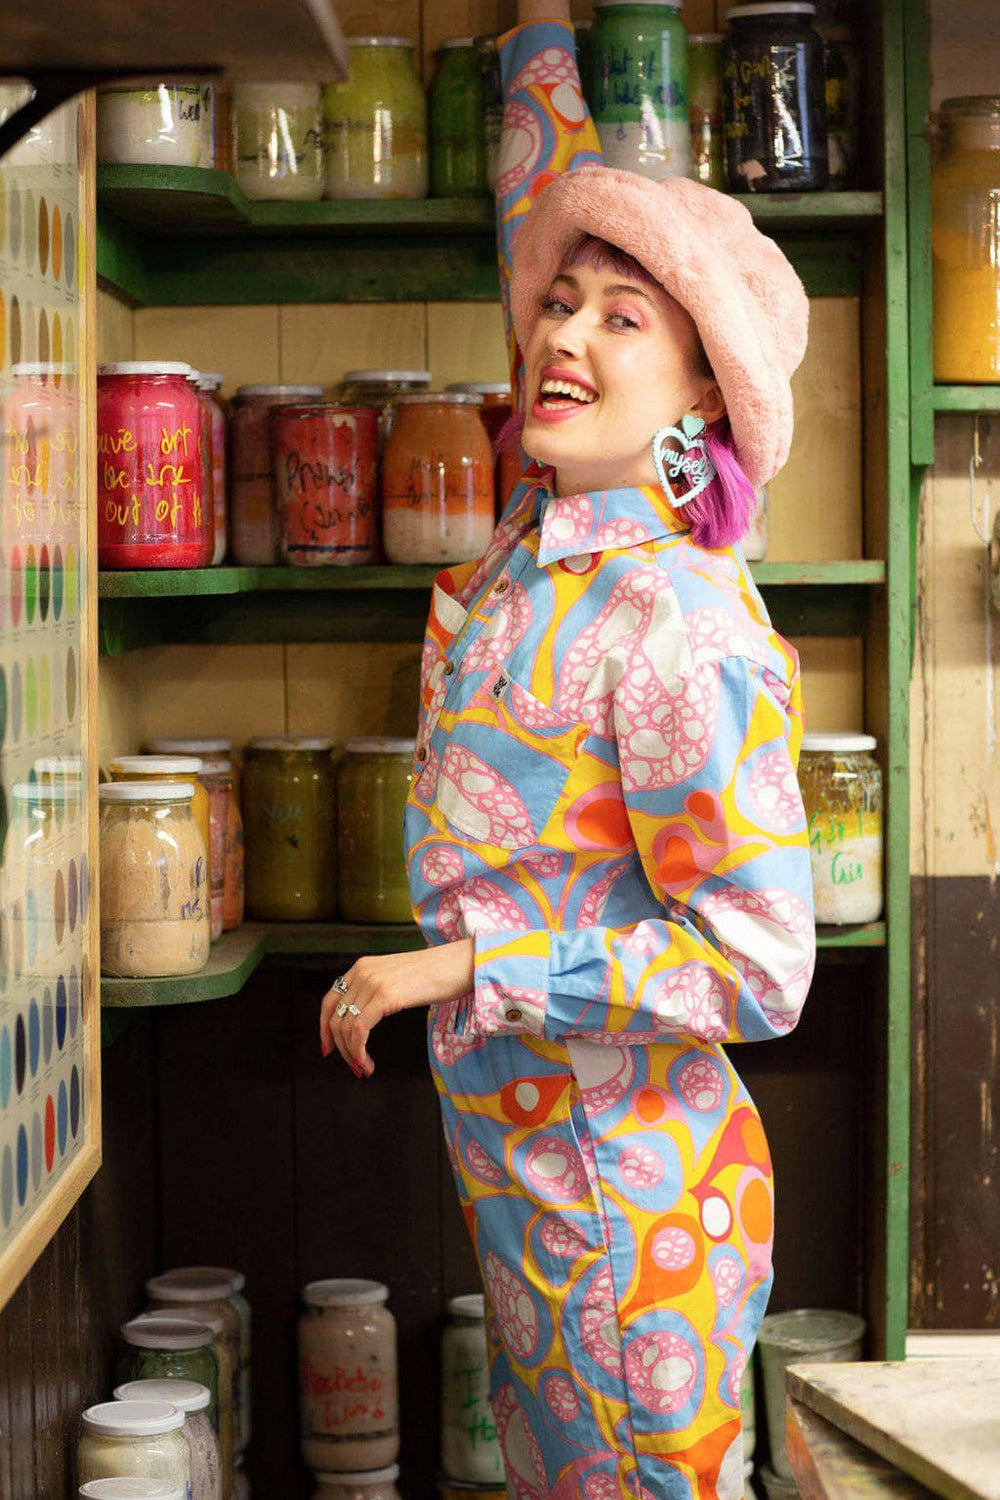 Lucy and Yak jumpsuit 'Jem' Limited Edition Organic Cotton Boilersuit in Blub Print